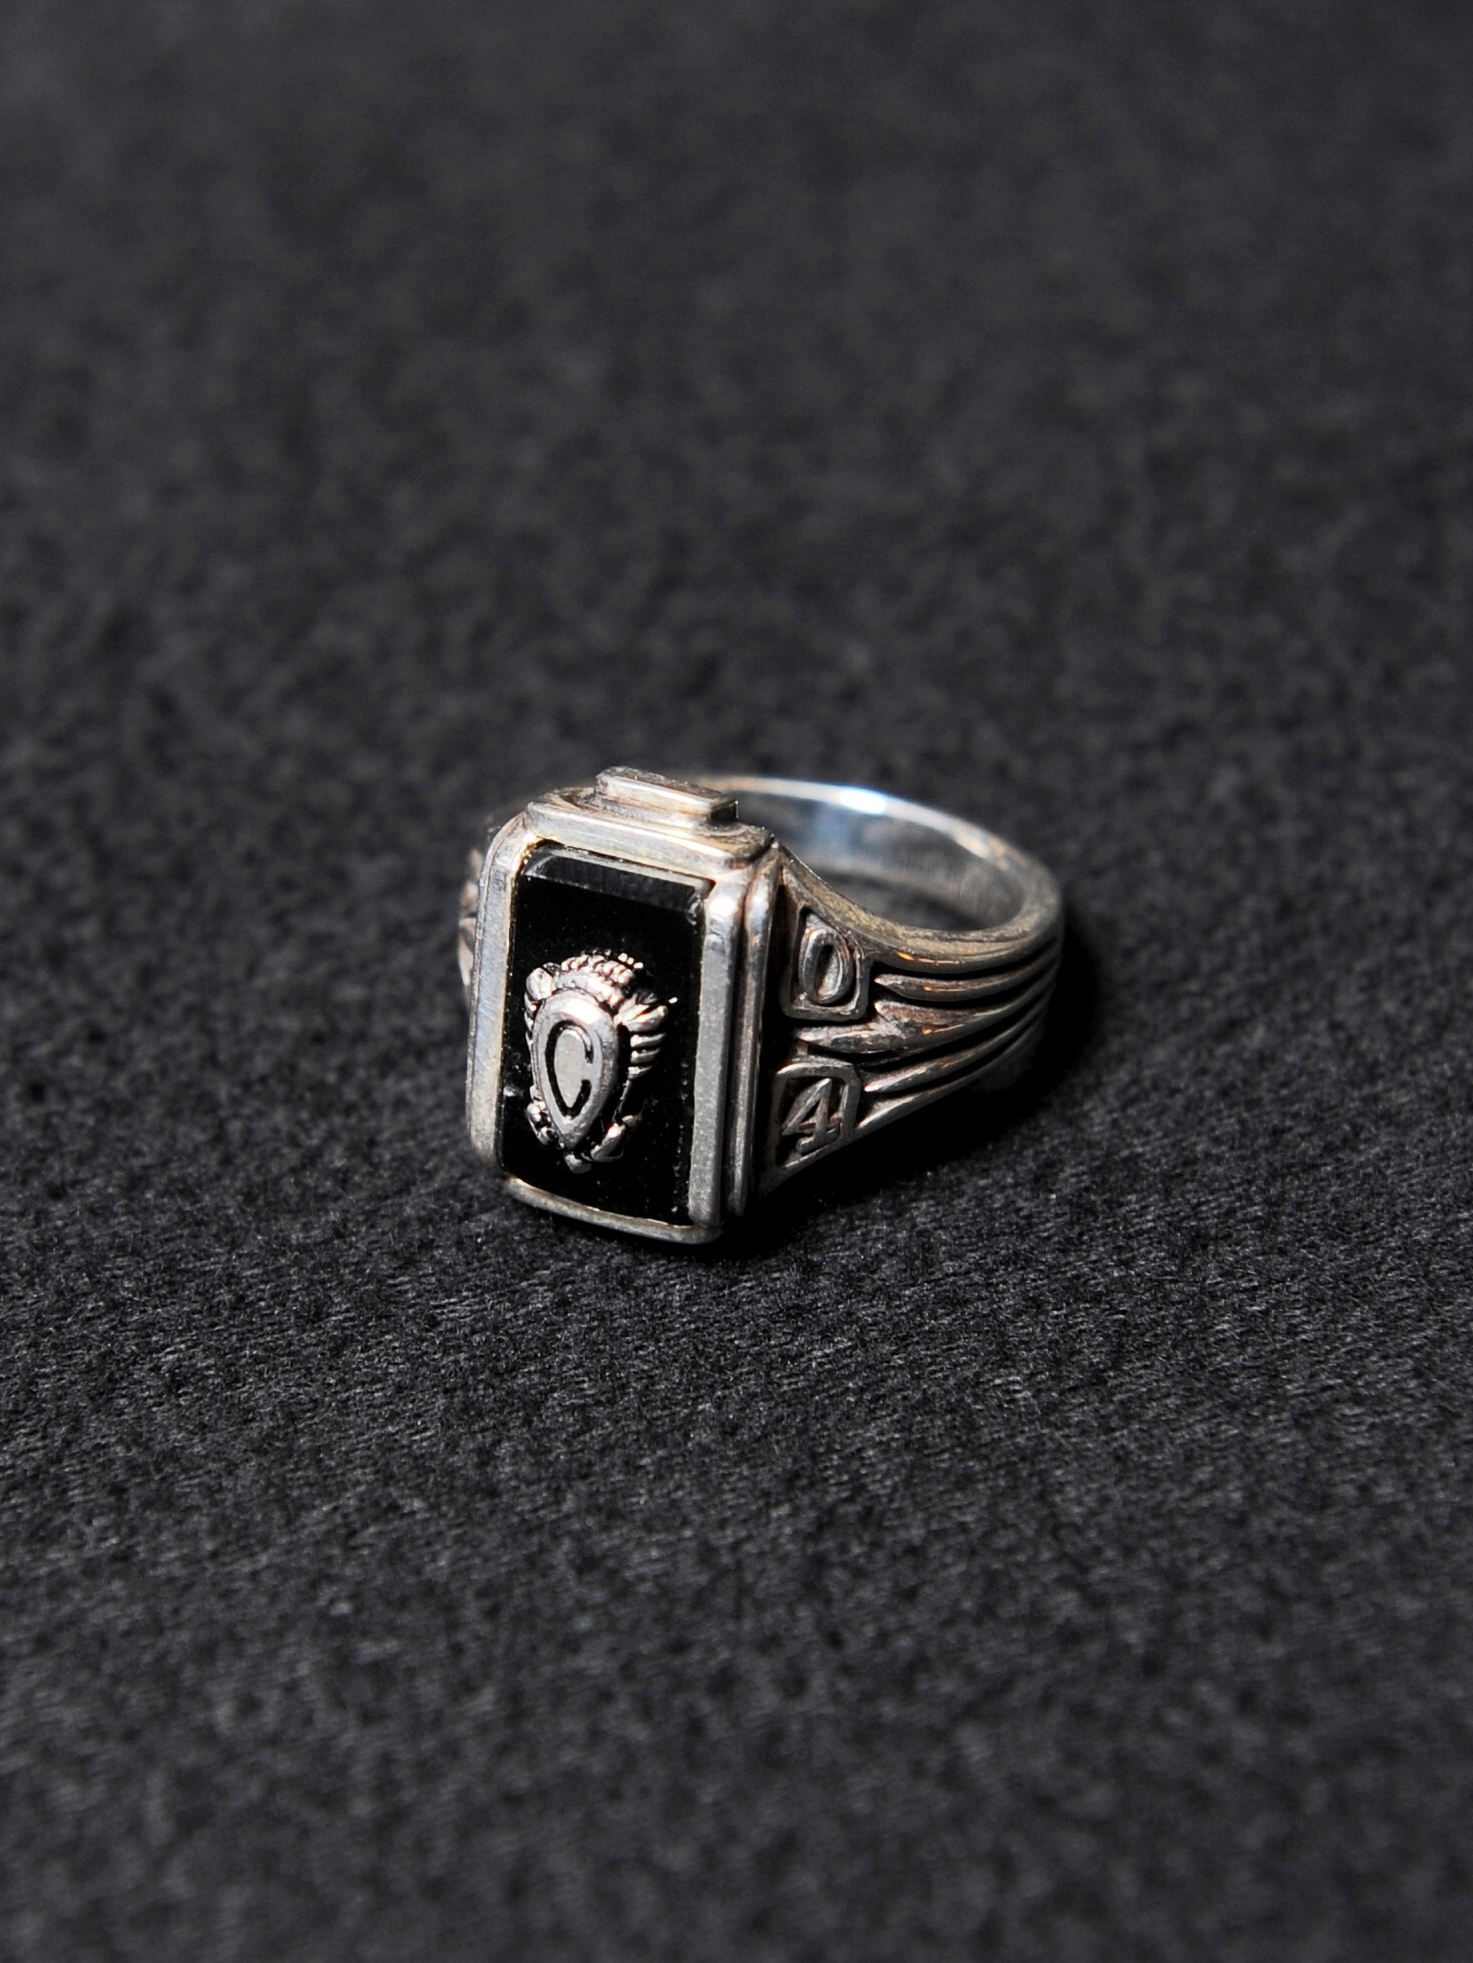 CALEE  「PINKIE COLLEGE RING 〈SILVER 925 〉」 SILVER 925製 ピンキーカレッジリング